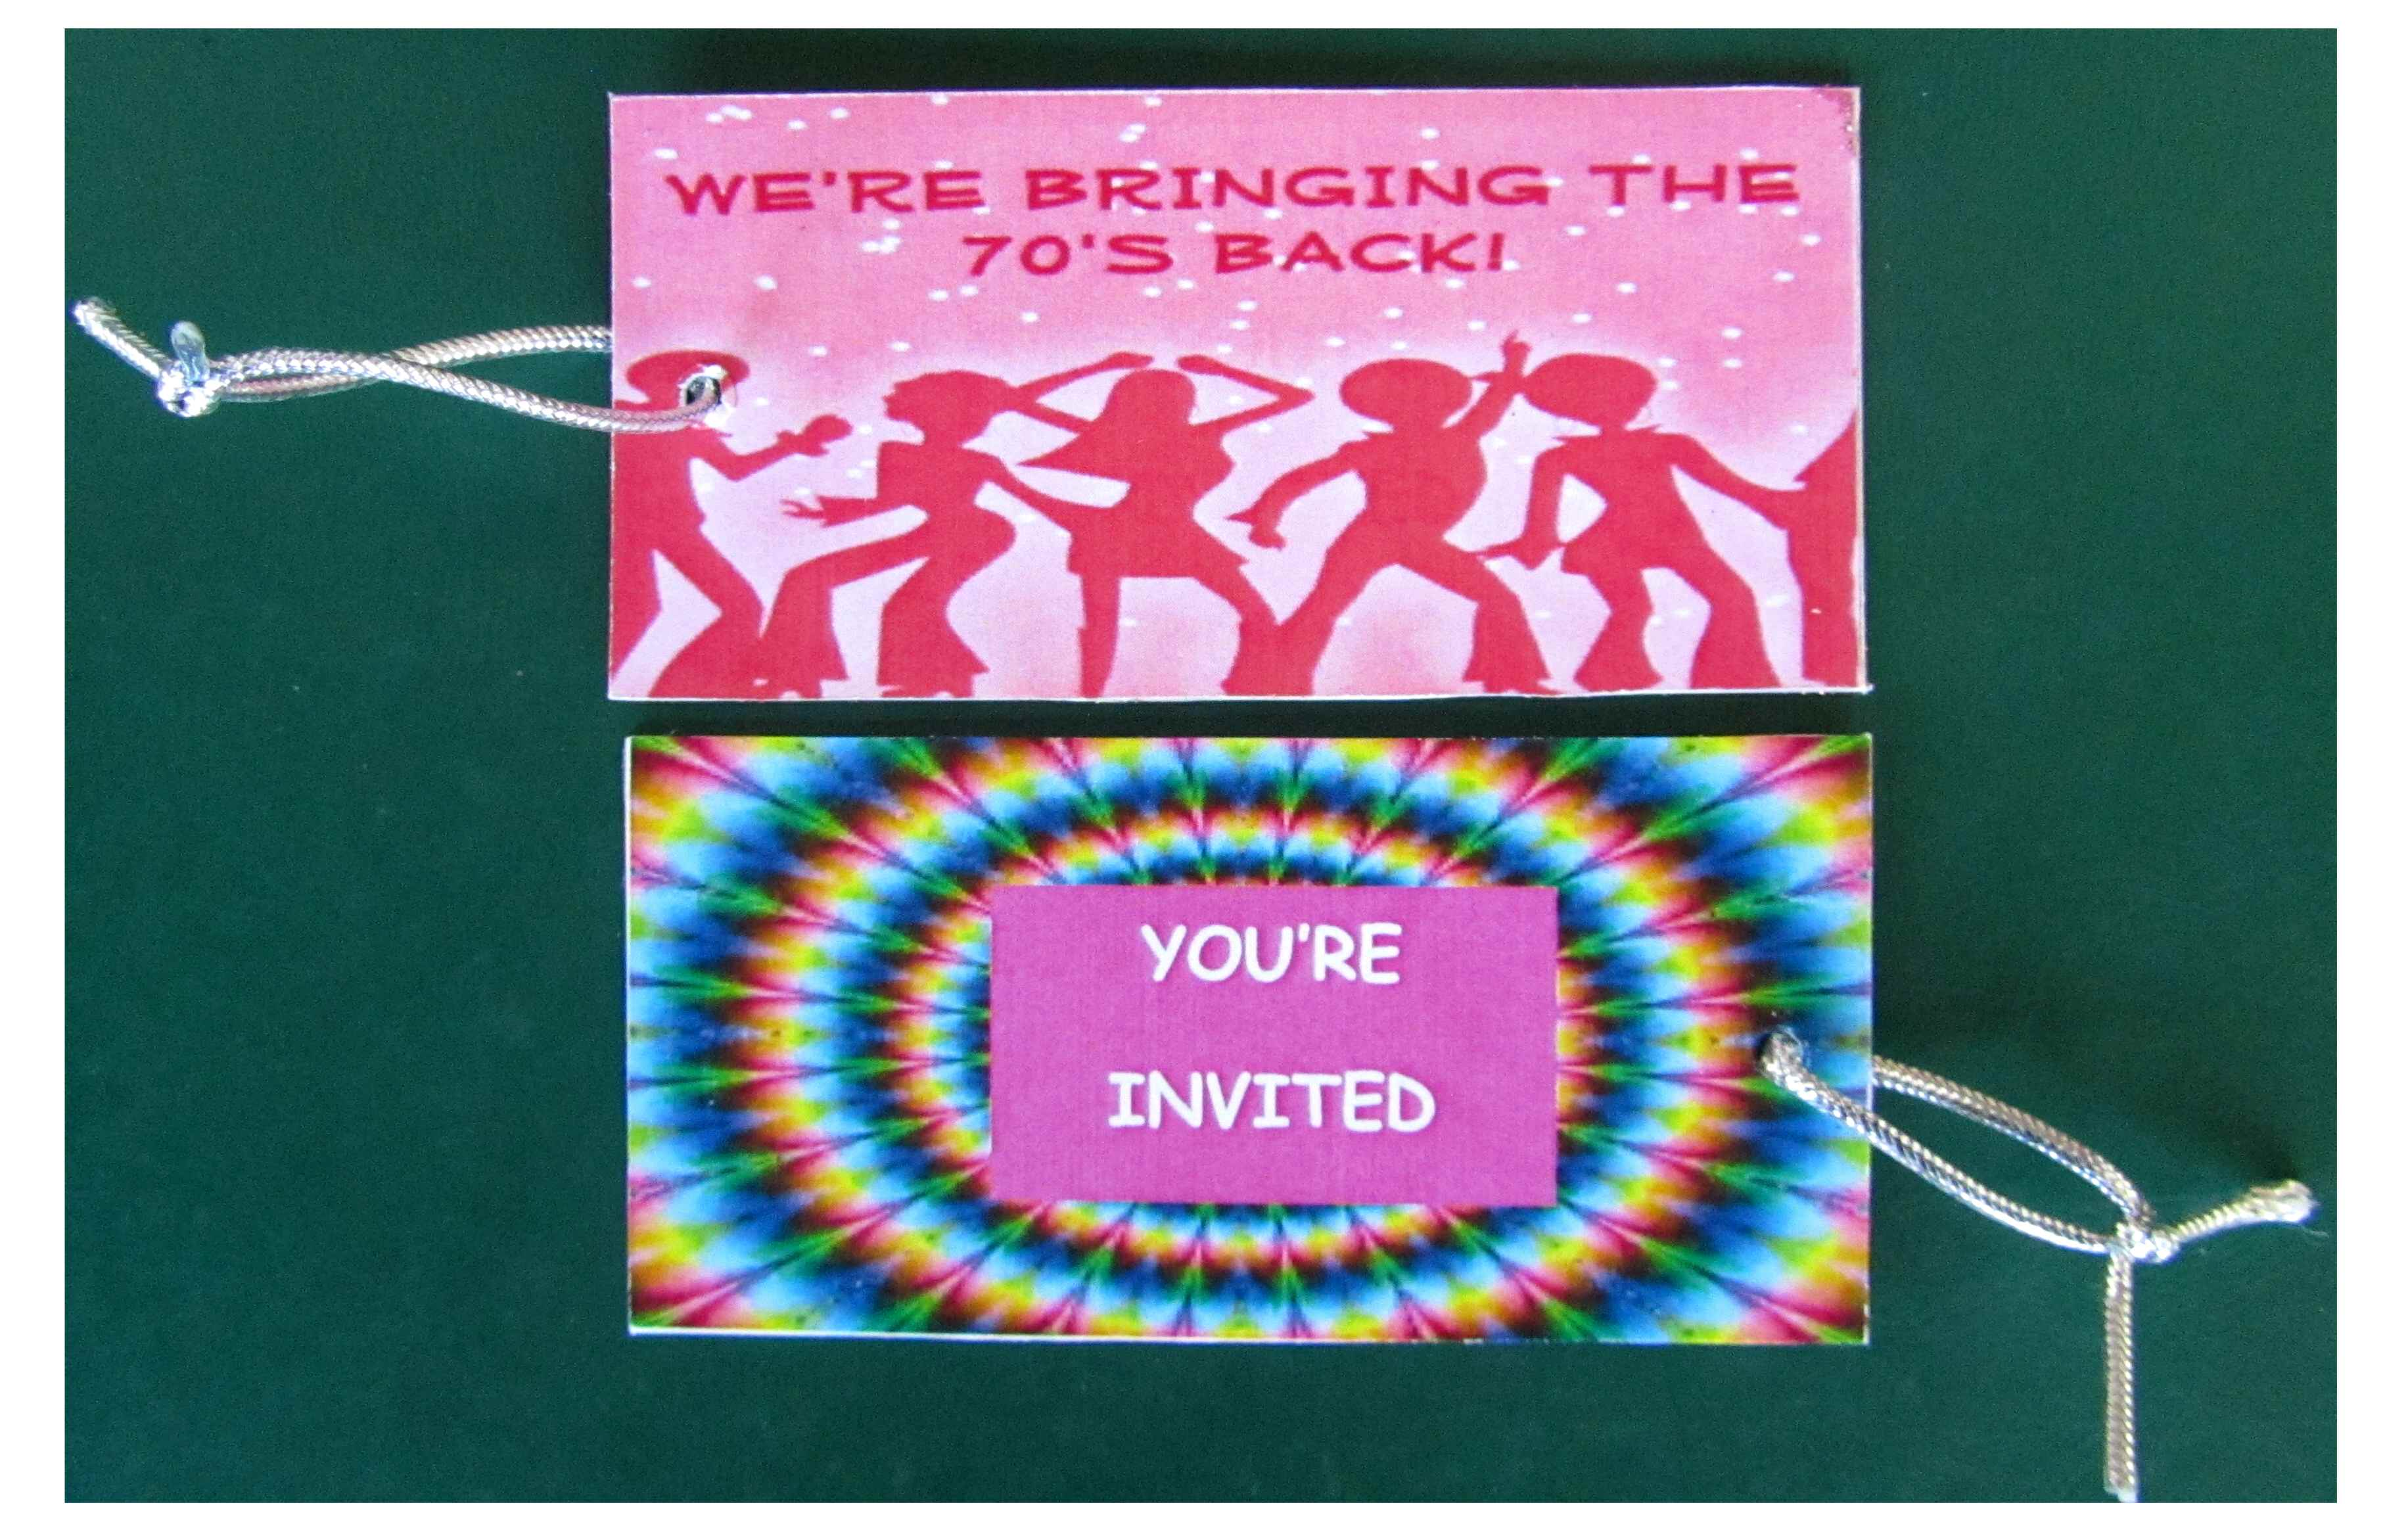 Lets Party On Down To The 70s easypeasy101